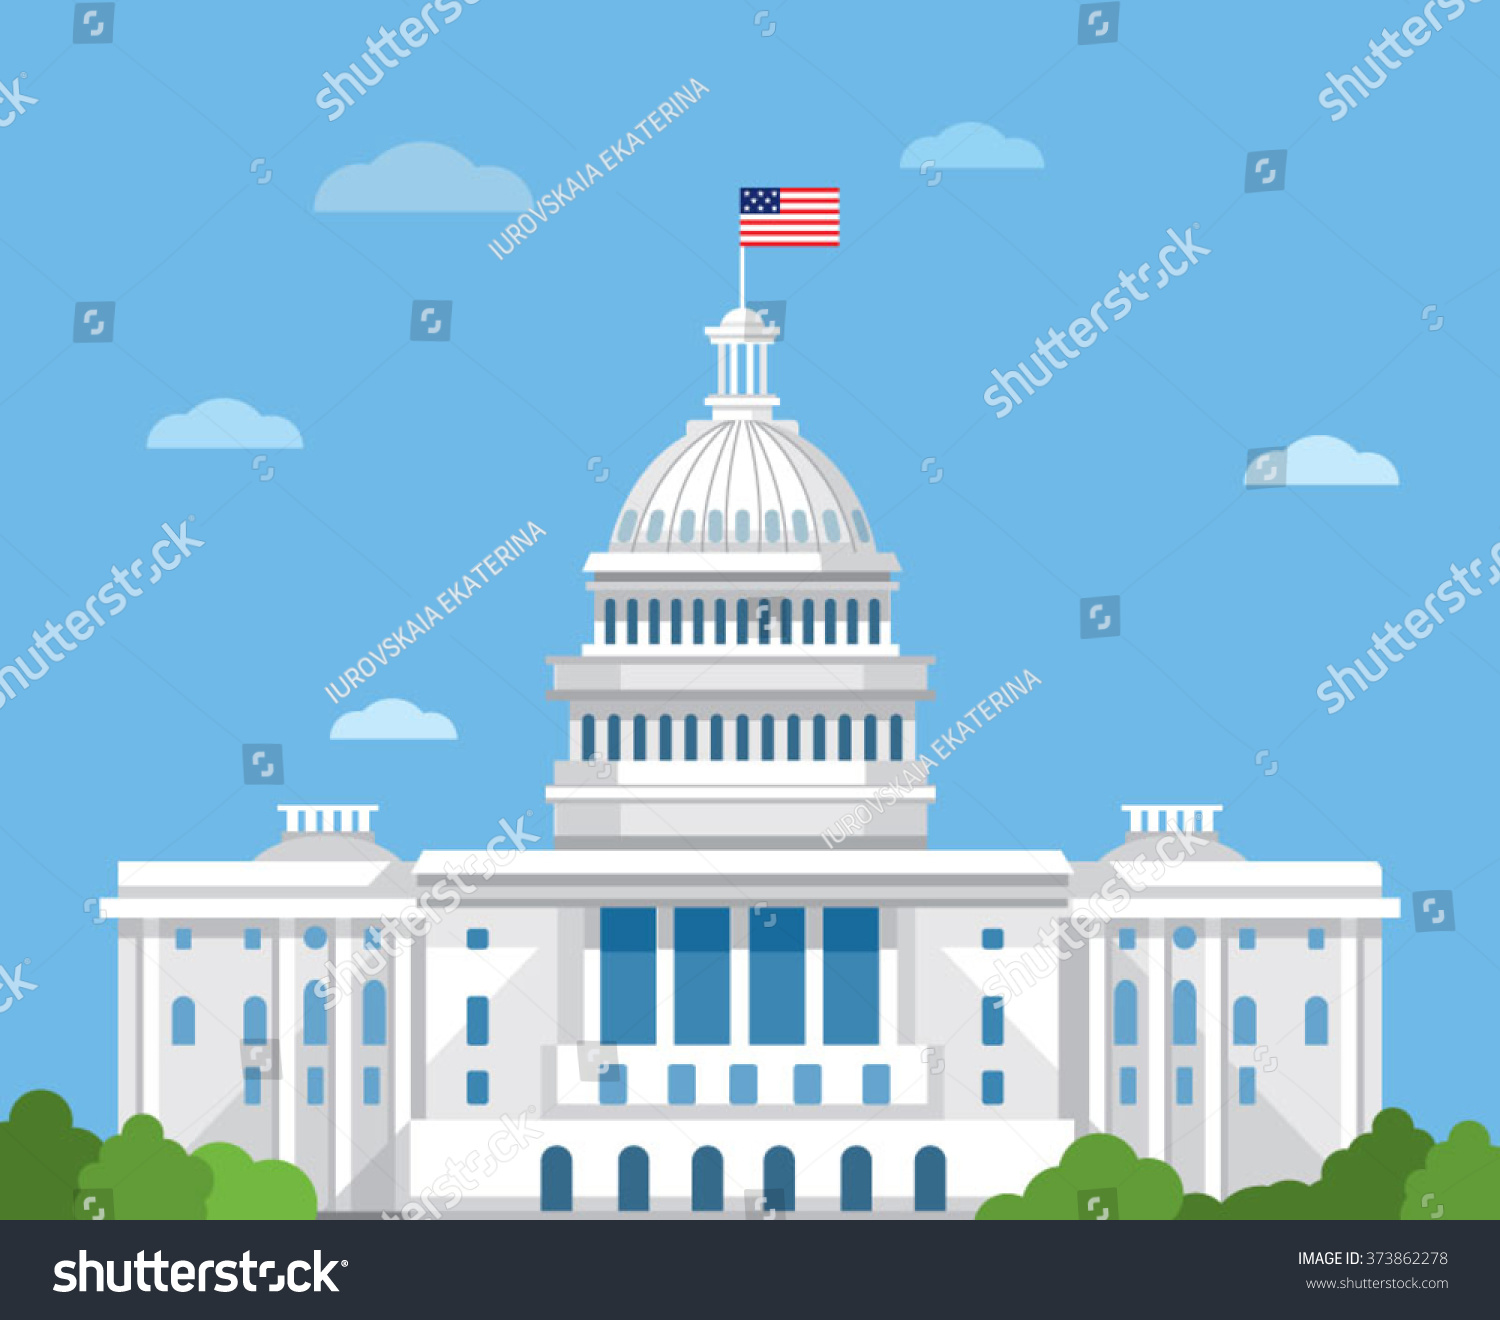 White House Vector Flat Illustration Washington 373862278 Shutterstock